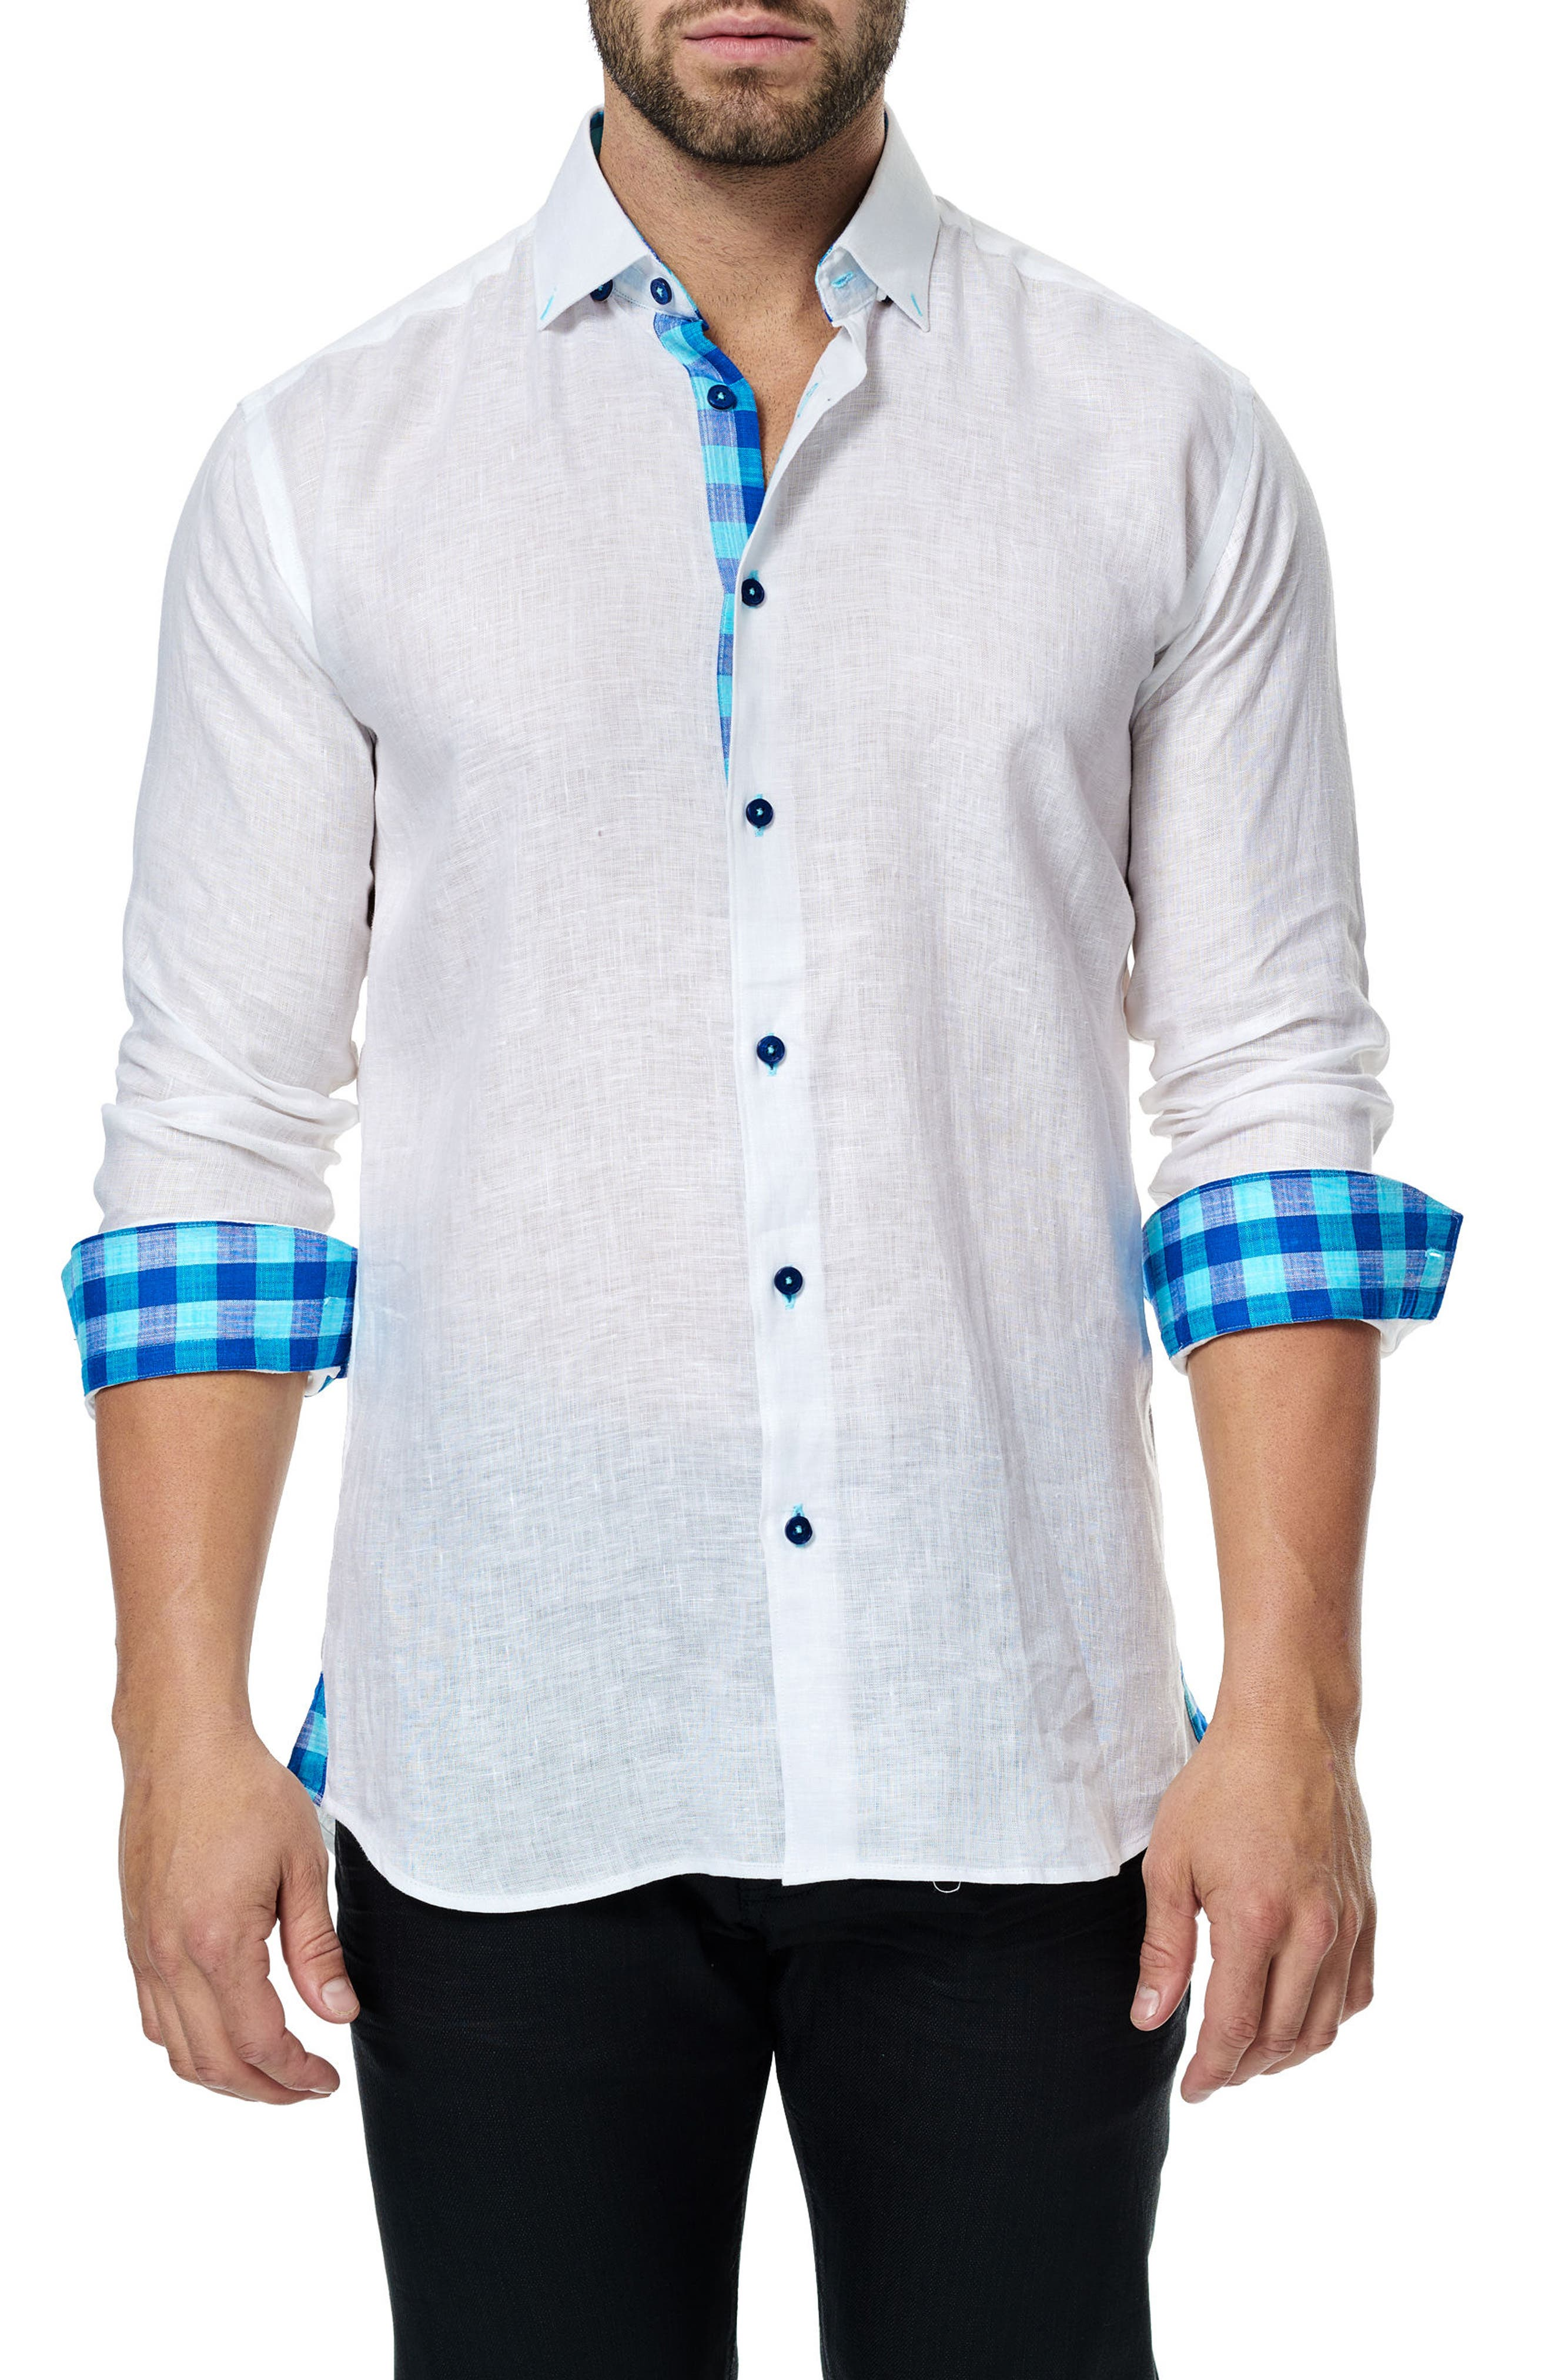 Maceoo Vogue Sport Shirt